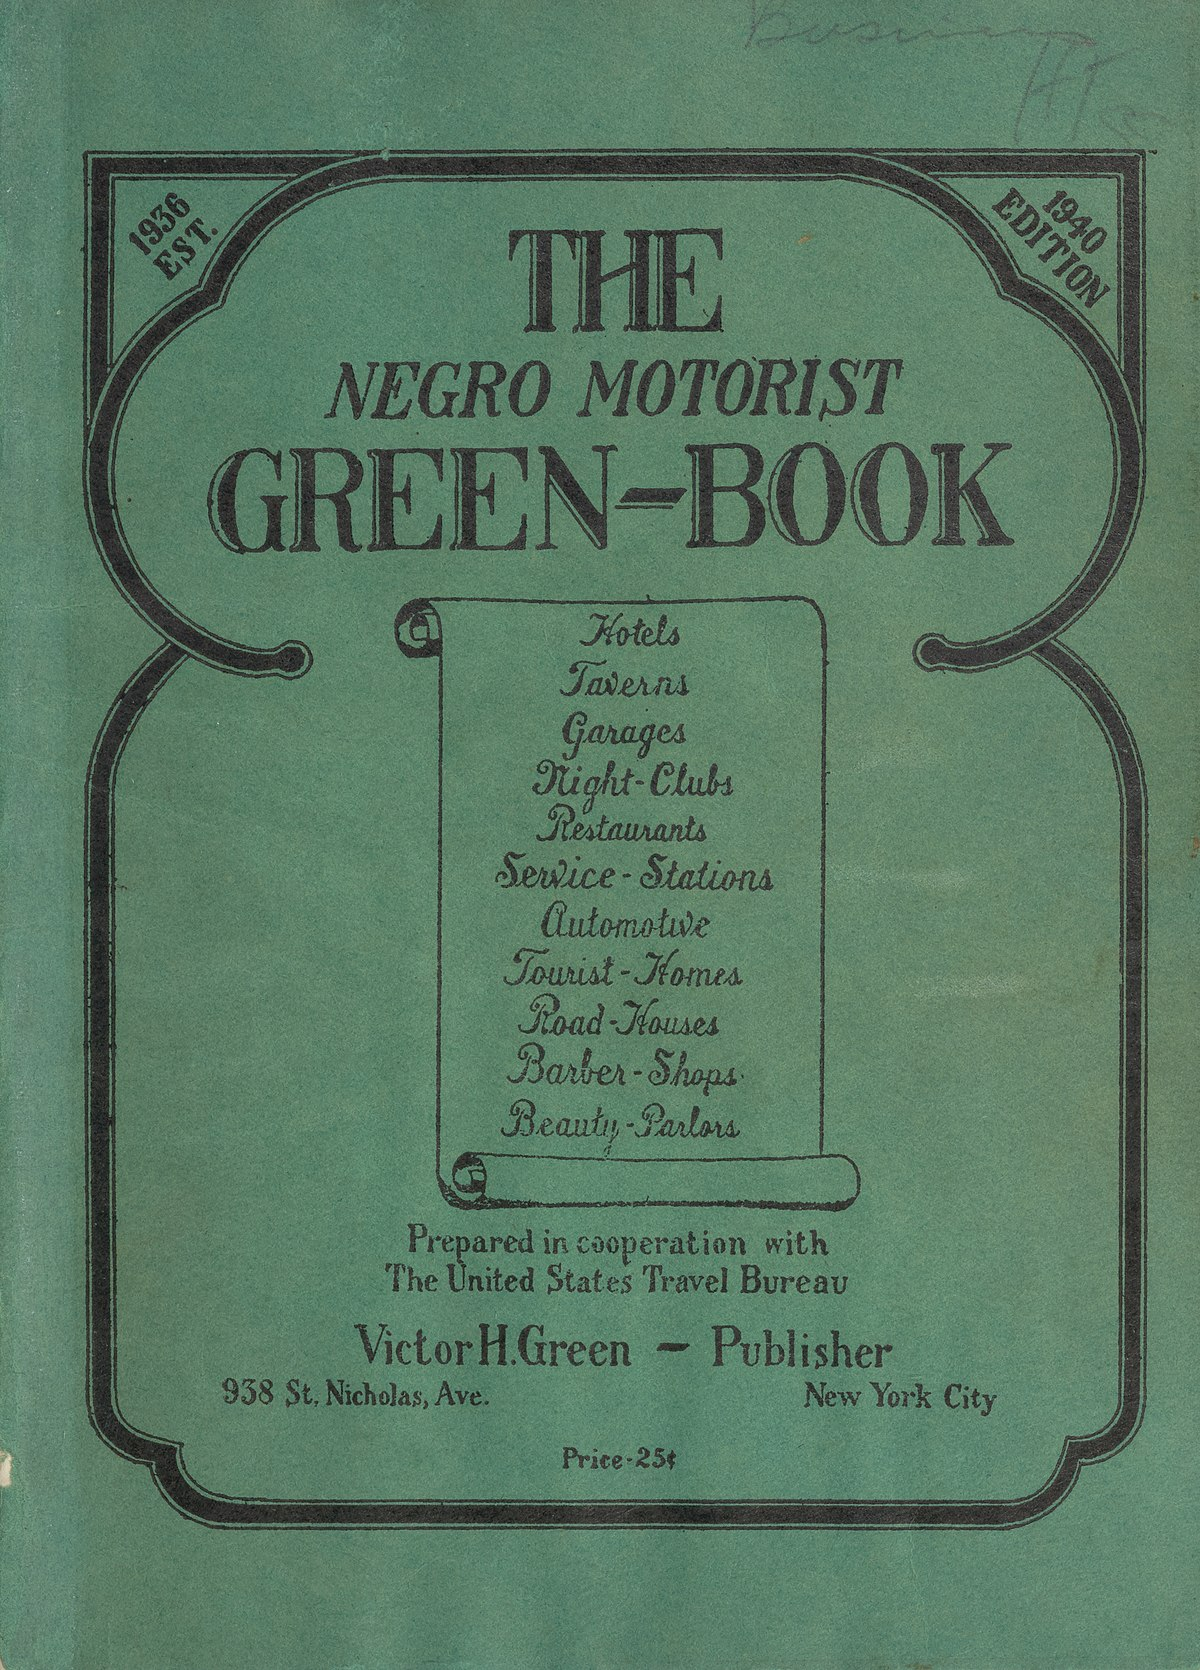 The Negro Motorist Green Book - Wikipedia